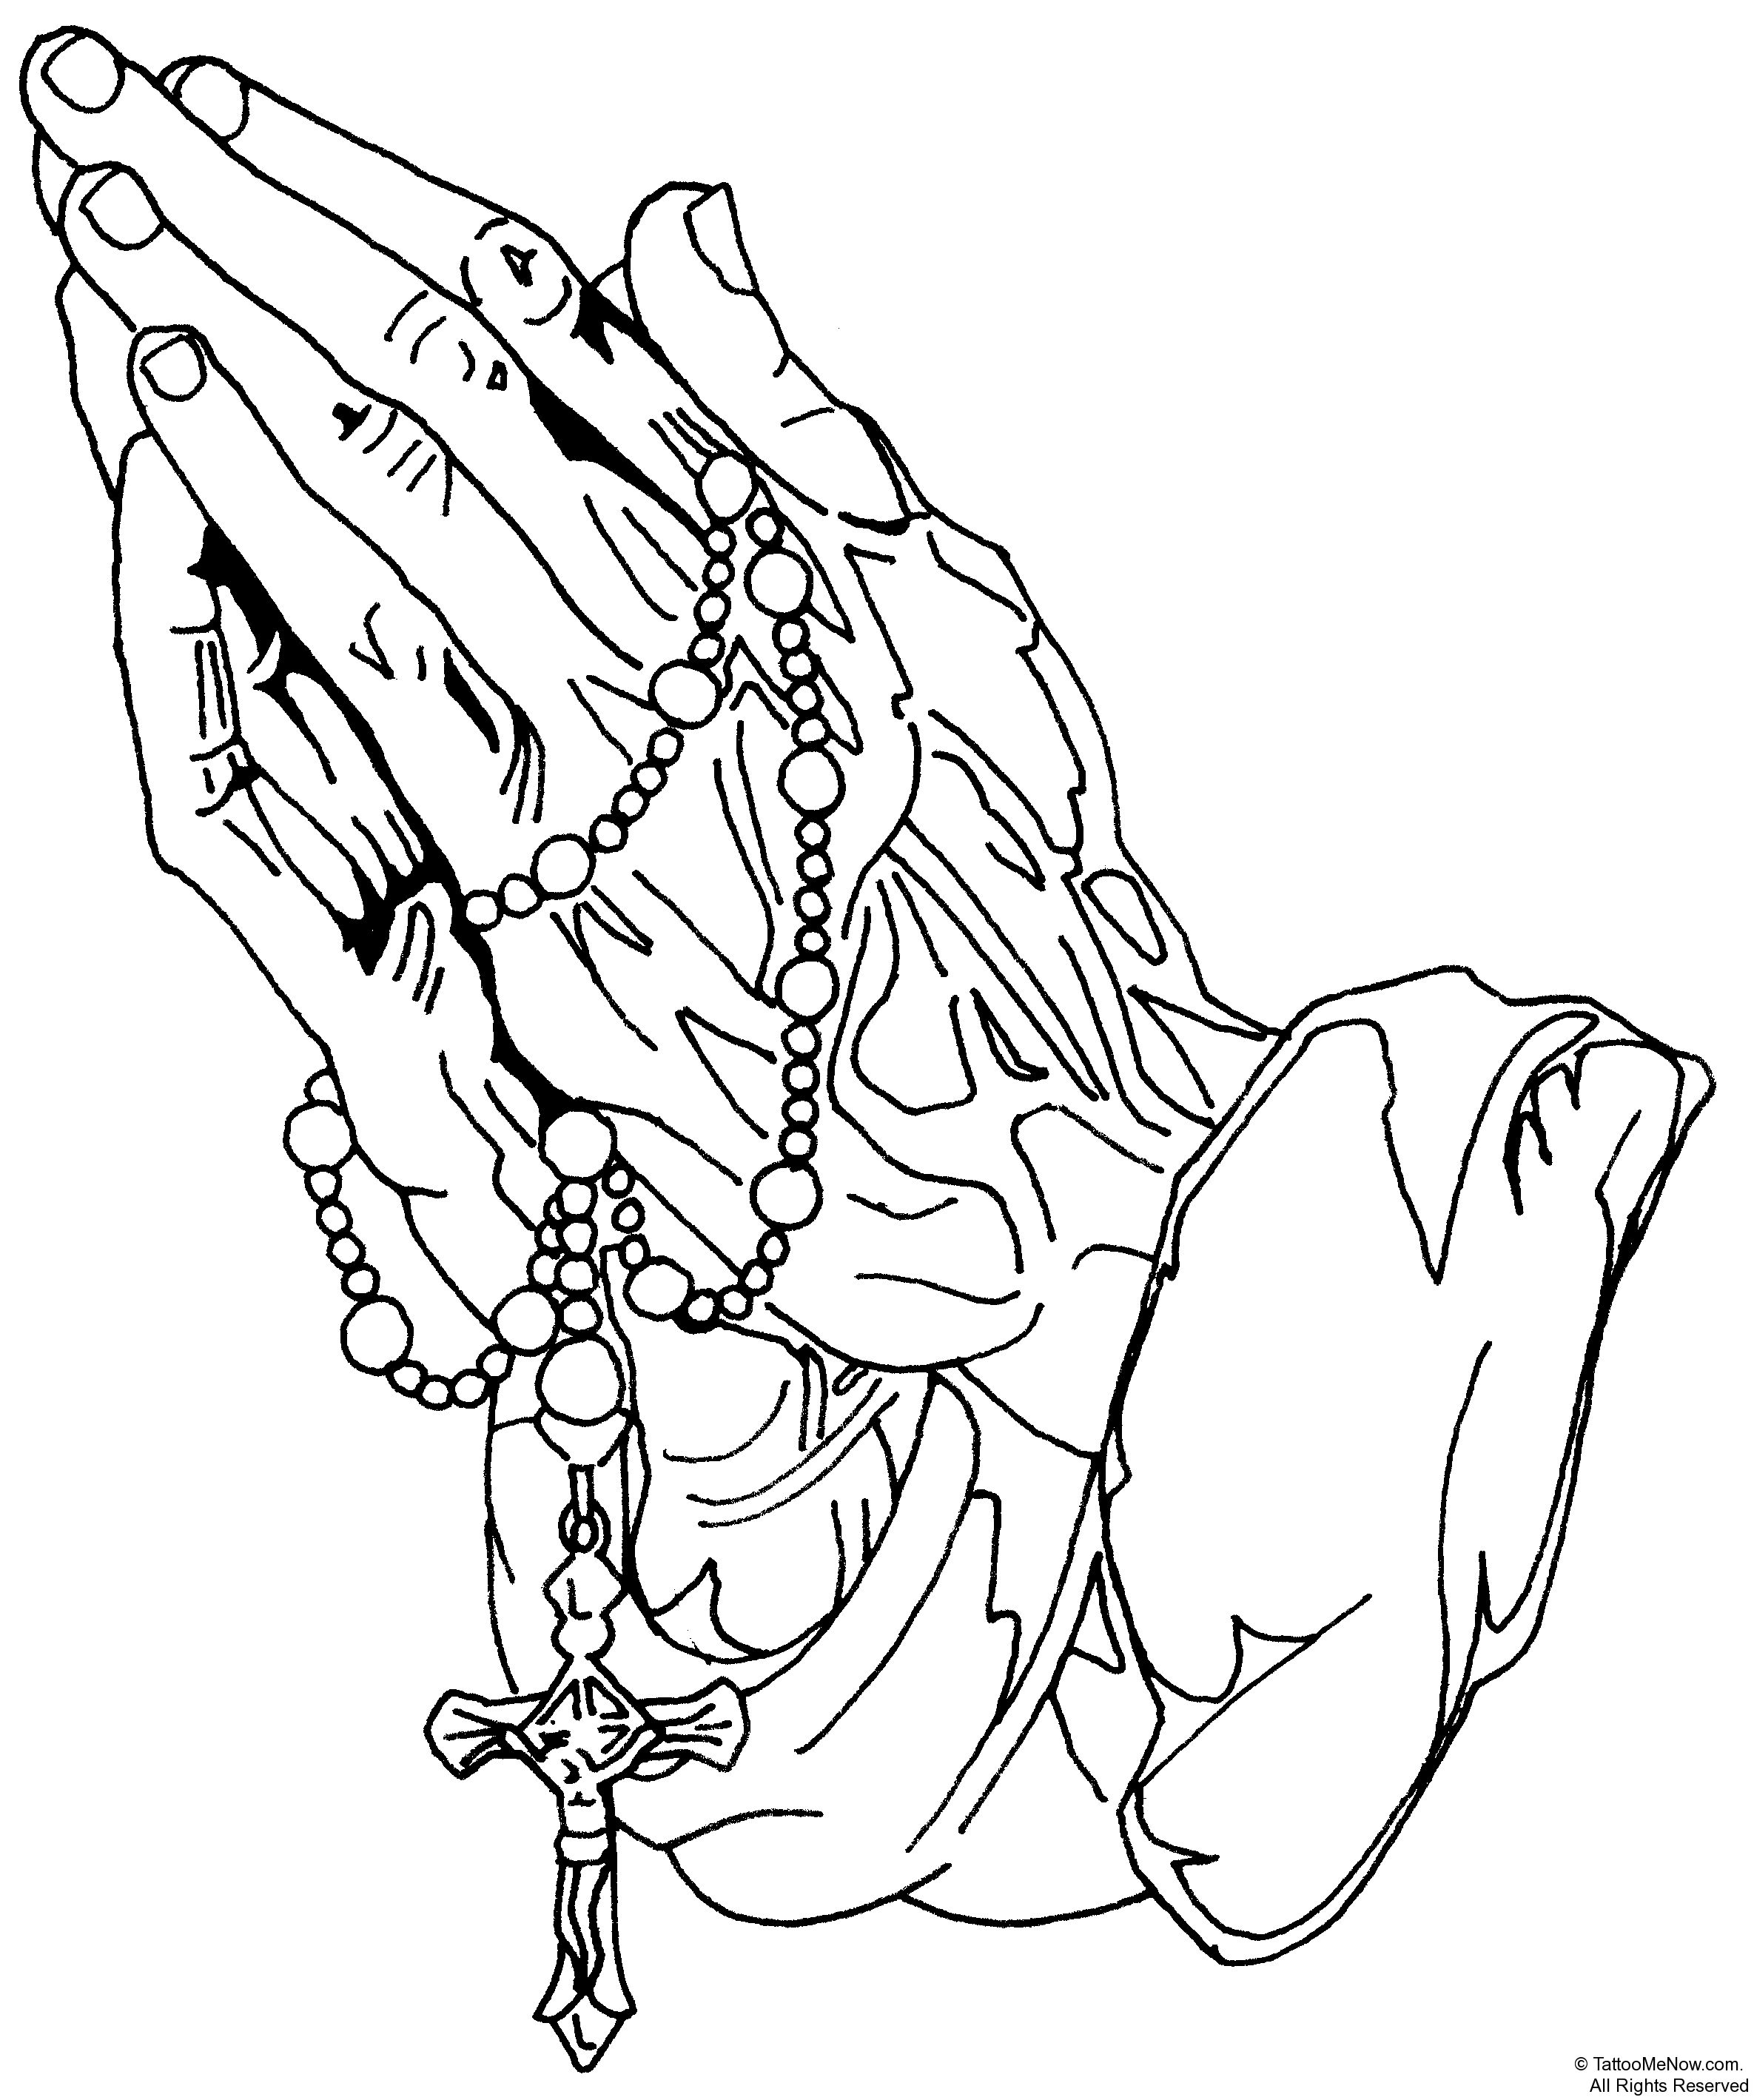 drawings of praying hands - Google Search | La | Pinterest